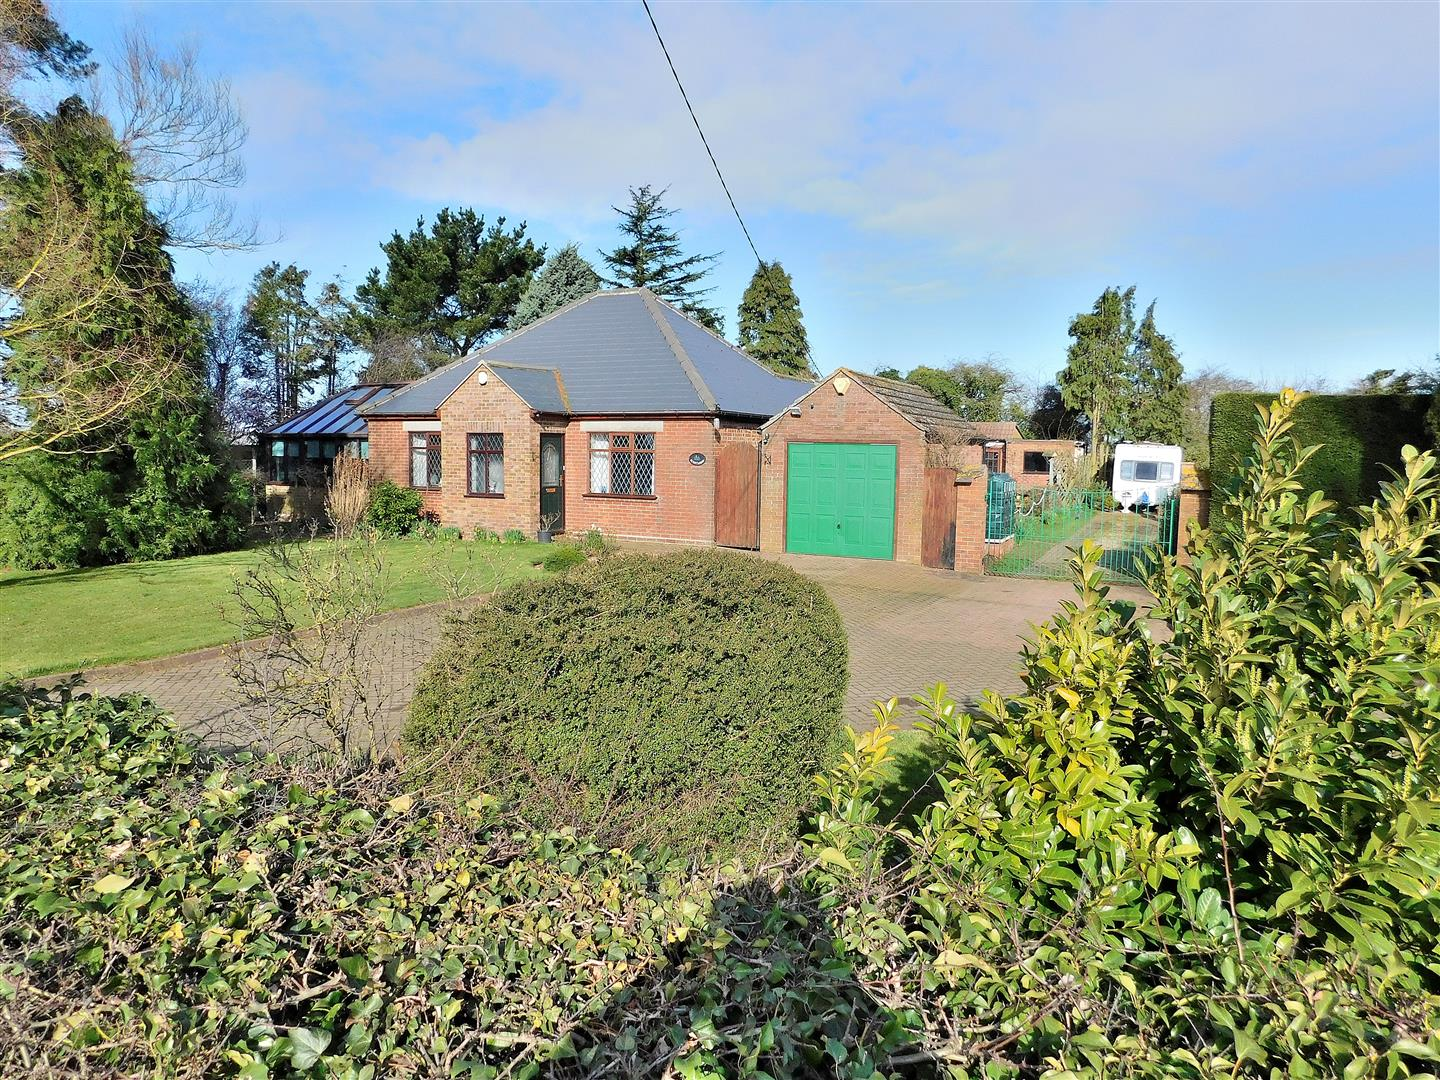 3 bed detached bungalow for sale in King's Lynn, PE34 4FF  - Property Image 1